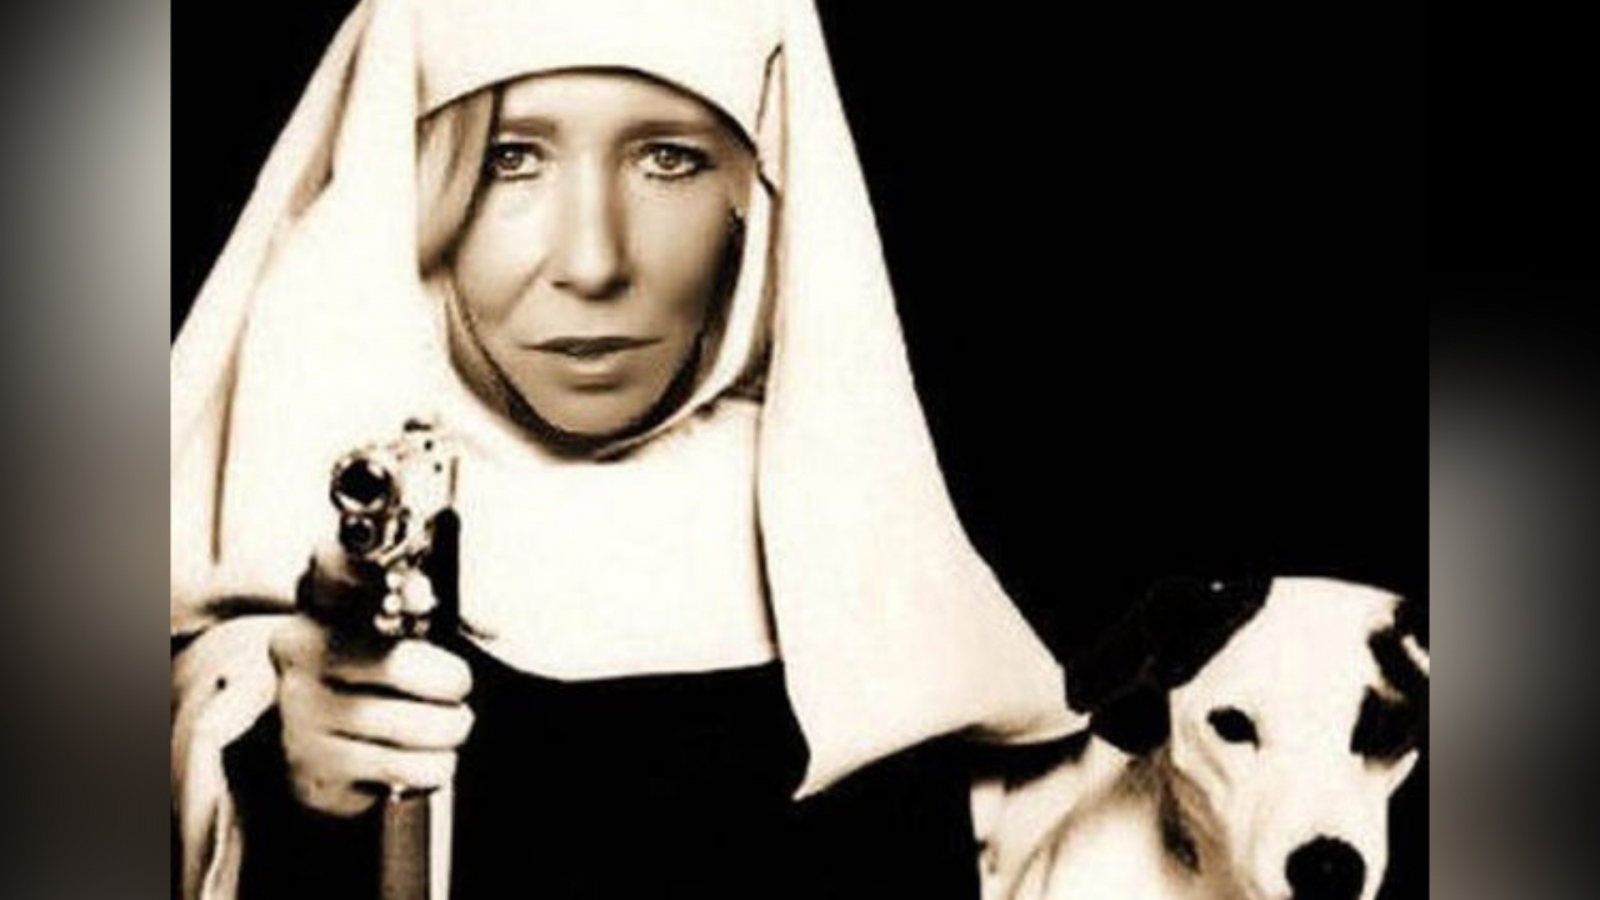 british-isis-recruiter-white-widow-a-k-a-sally-jones-killed-in-syrian-drone-strike